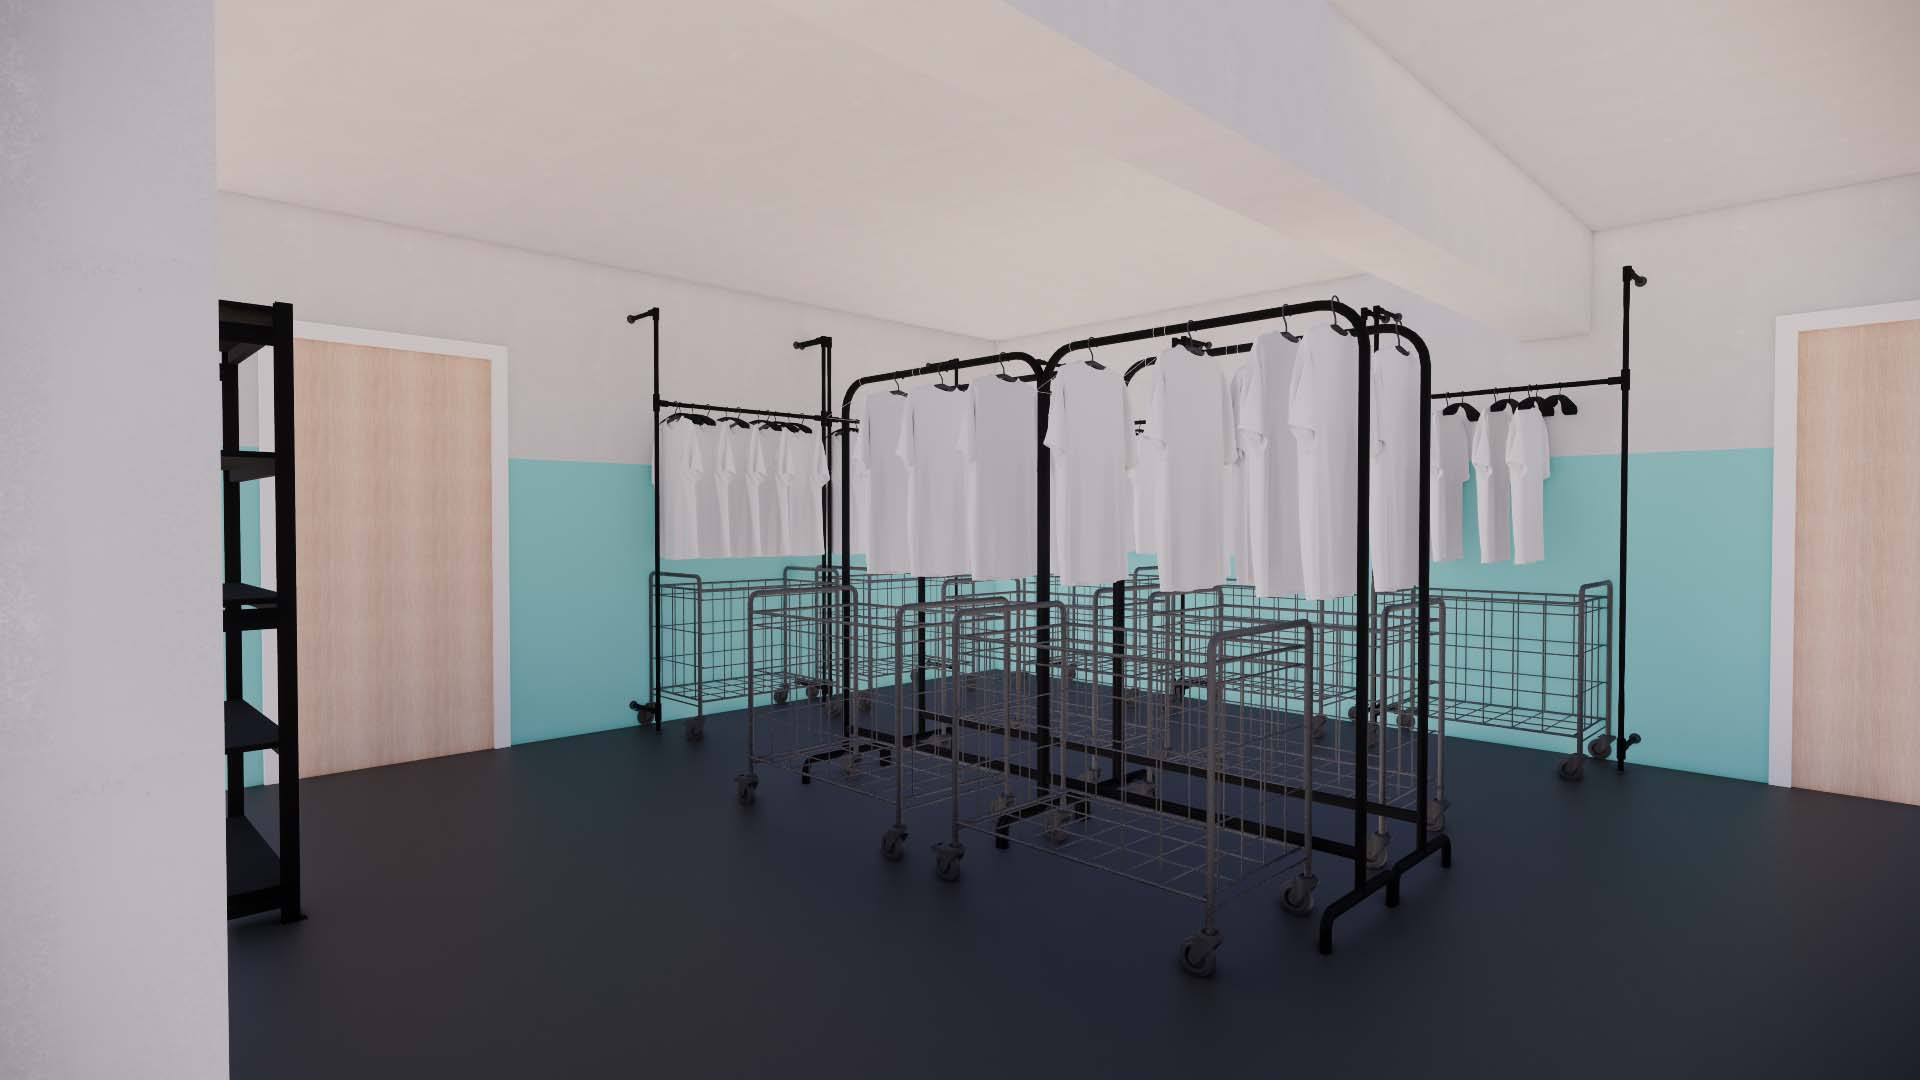 A 3-D rendering (view #1) of MFP's clothing shop, designed by TBL. The updated space features durable materials that are easily navigated by clients and staff.